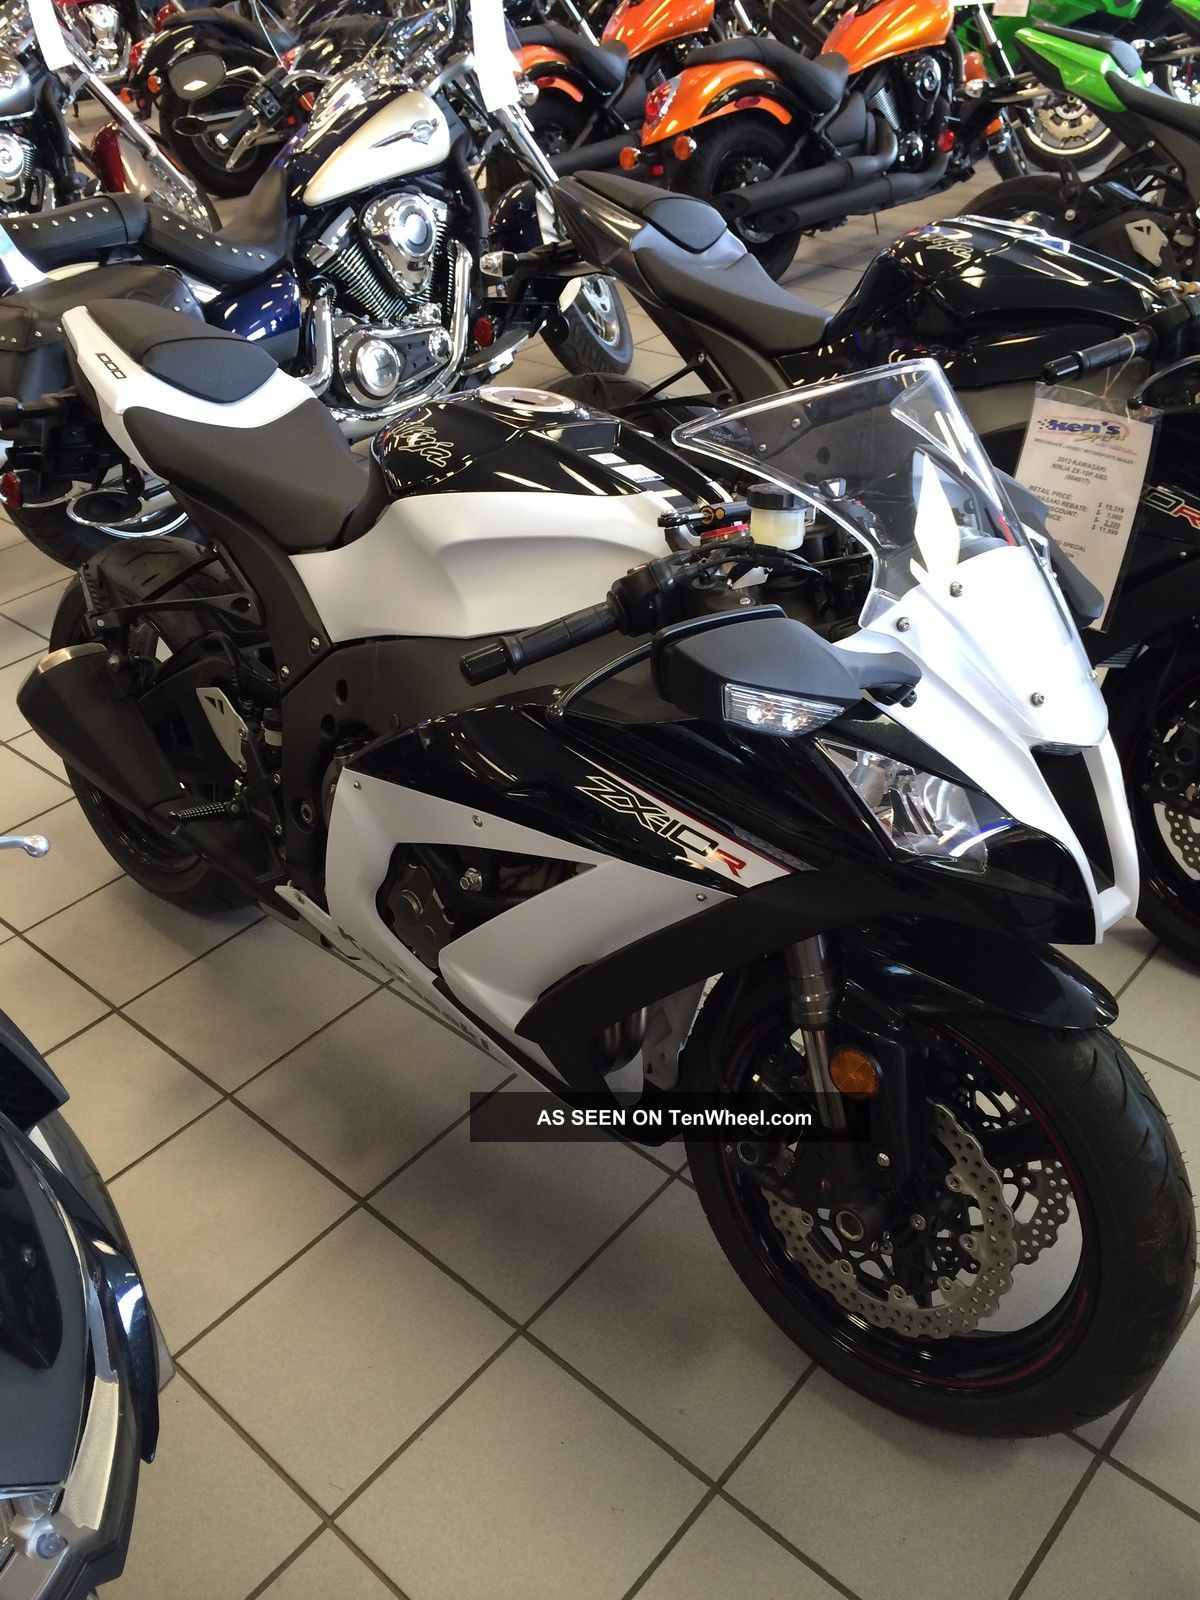 2013 Kawasaki Ninja Zx - 10r White / Black Zx1000jdf Ninja photo